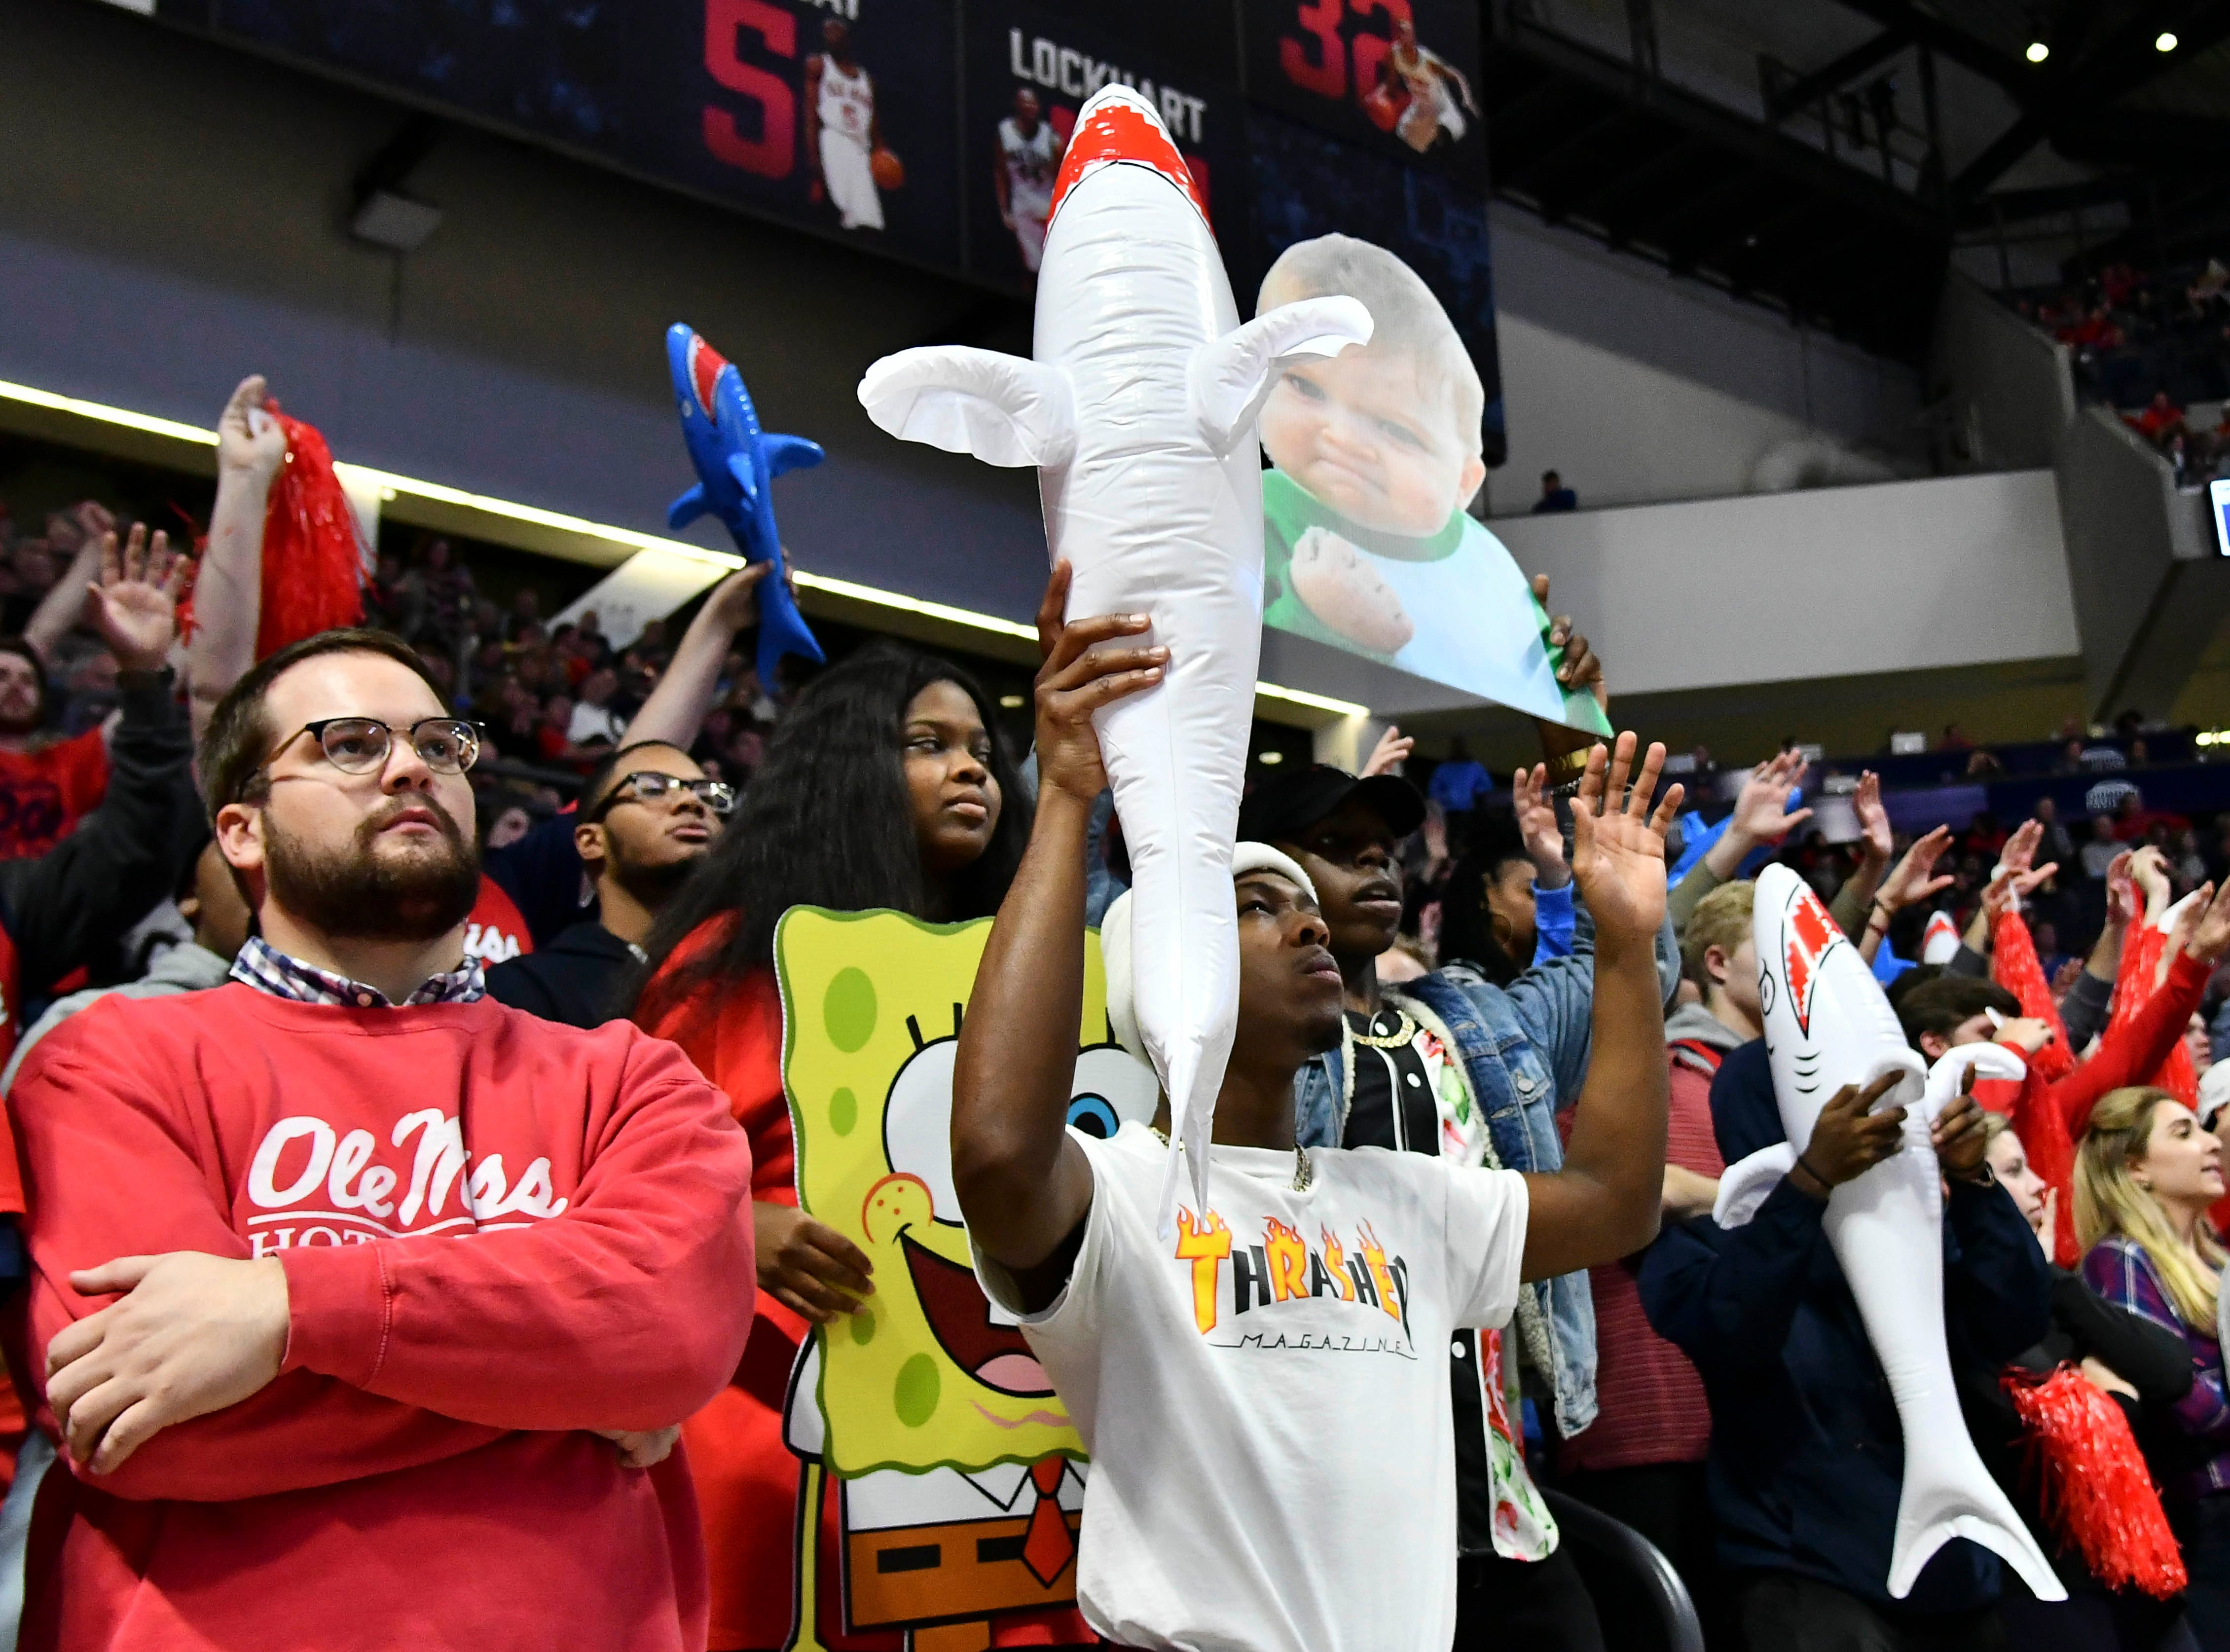 Jan 9, 2019; Oxford, MS, USA; Mississippi Rebels fans cheer during the first quarter of the game against the Auburn Tigers at The Pavilion at Ole Miss. Mandatory Credit: Matt Bush-USA TODAY Sports